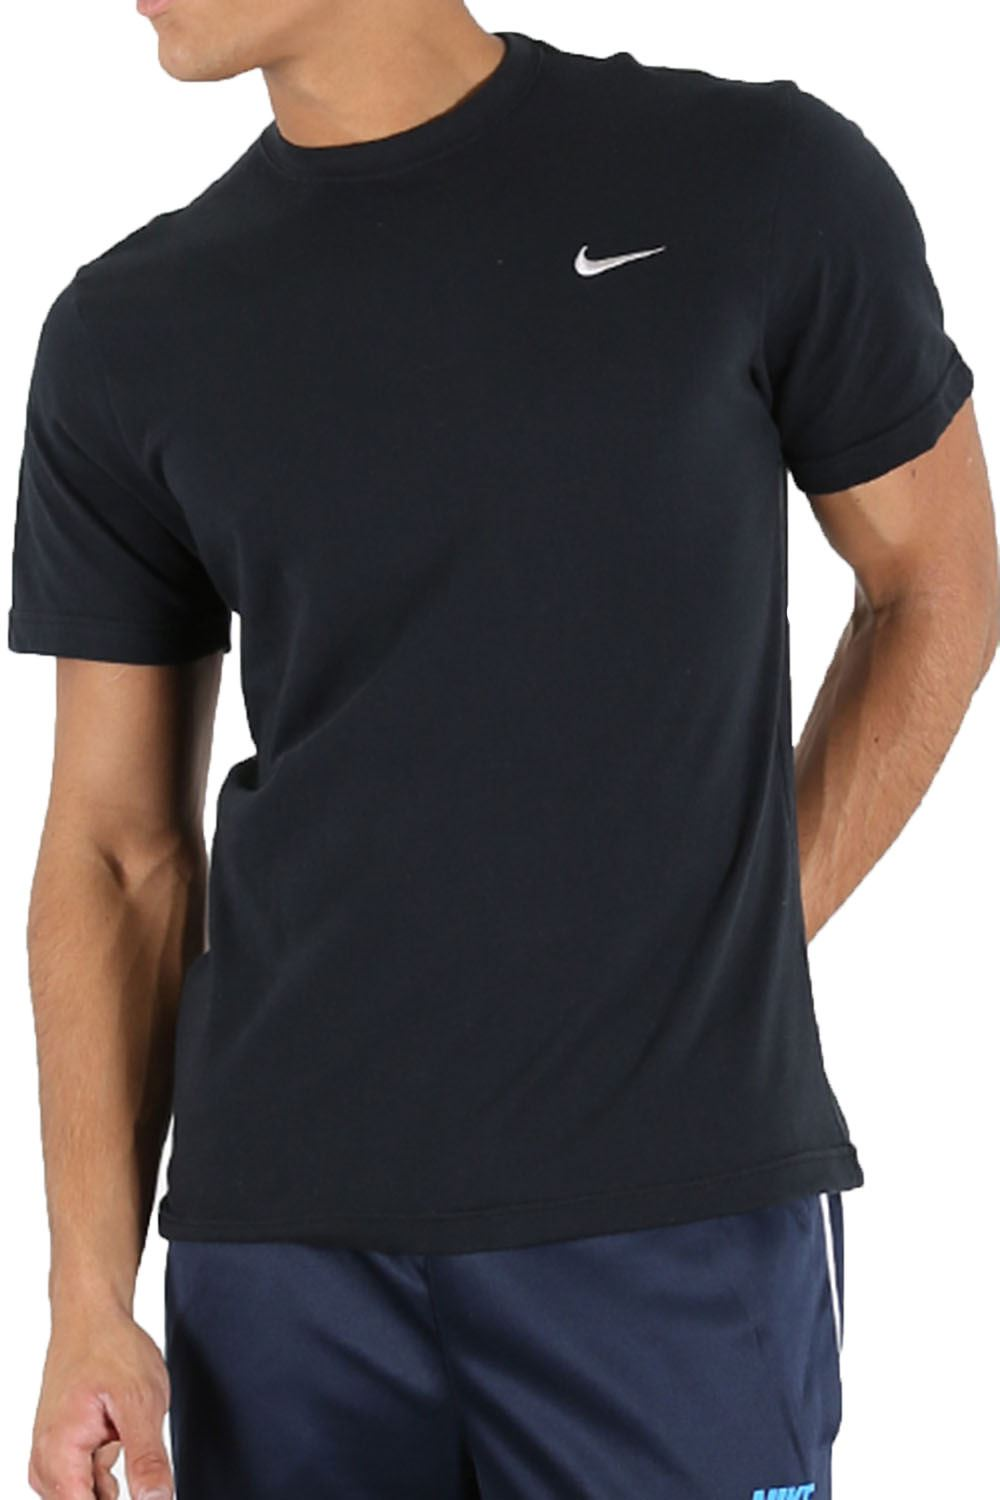 nike mens t shirt crew neck embroidered swoosh logo short sleeve sports tee top ebay. Black Bedroom Furniture Sets. Home Design Ideas